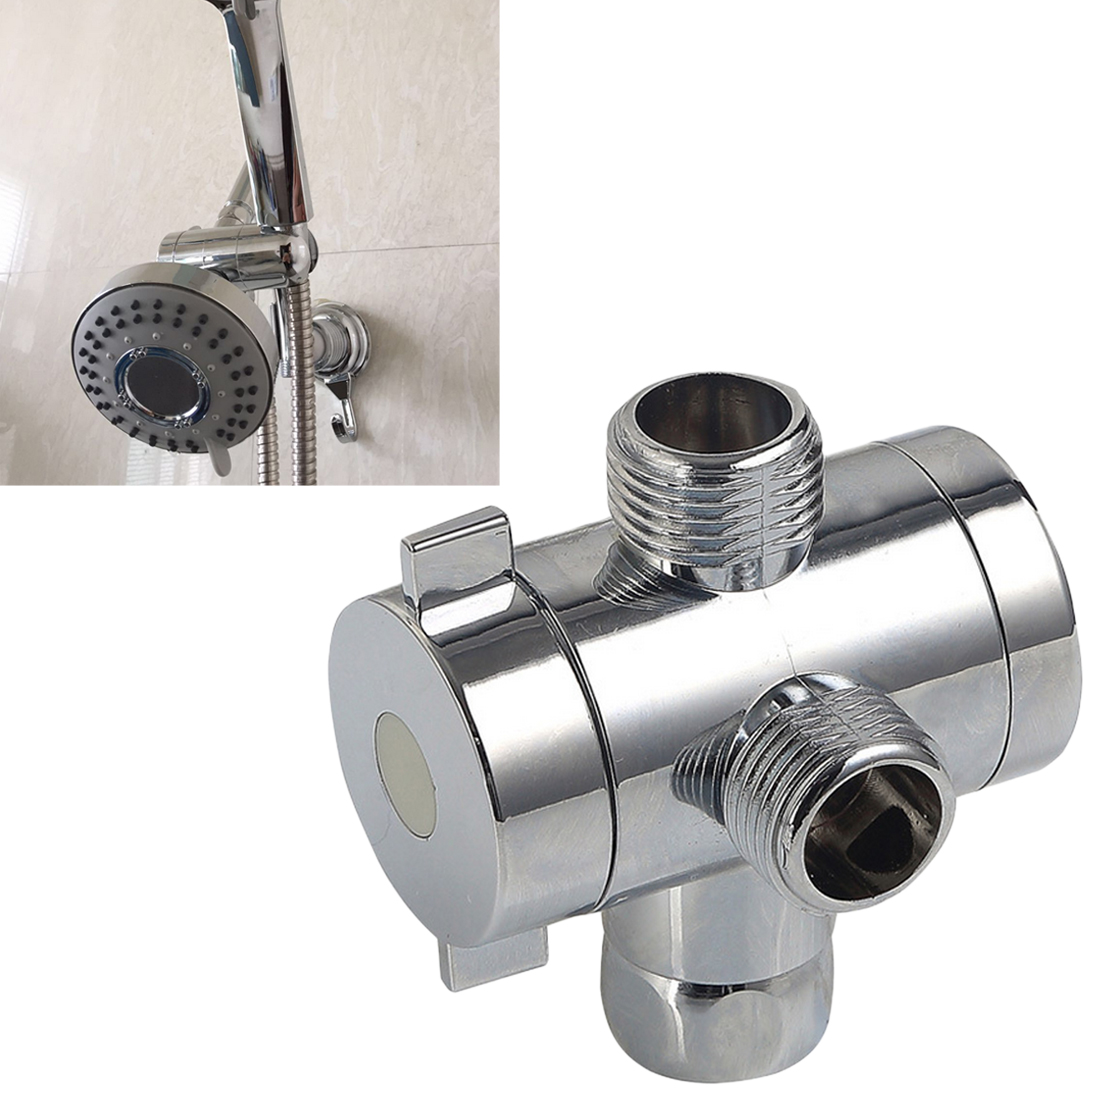 Way T Adapter Diverter Valve Adjustable Shower Head Arm